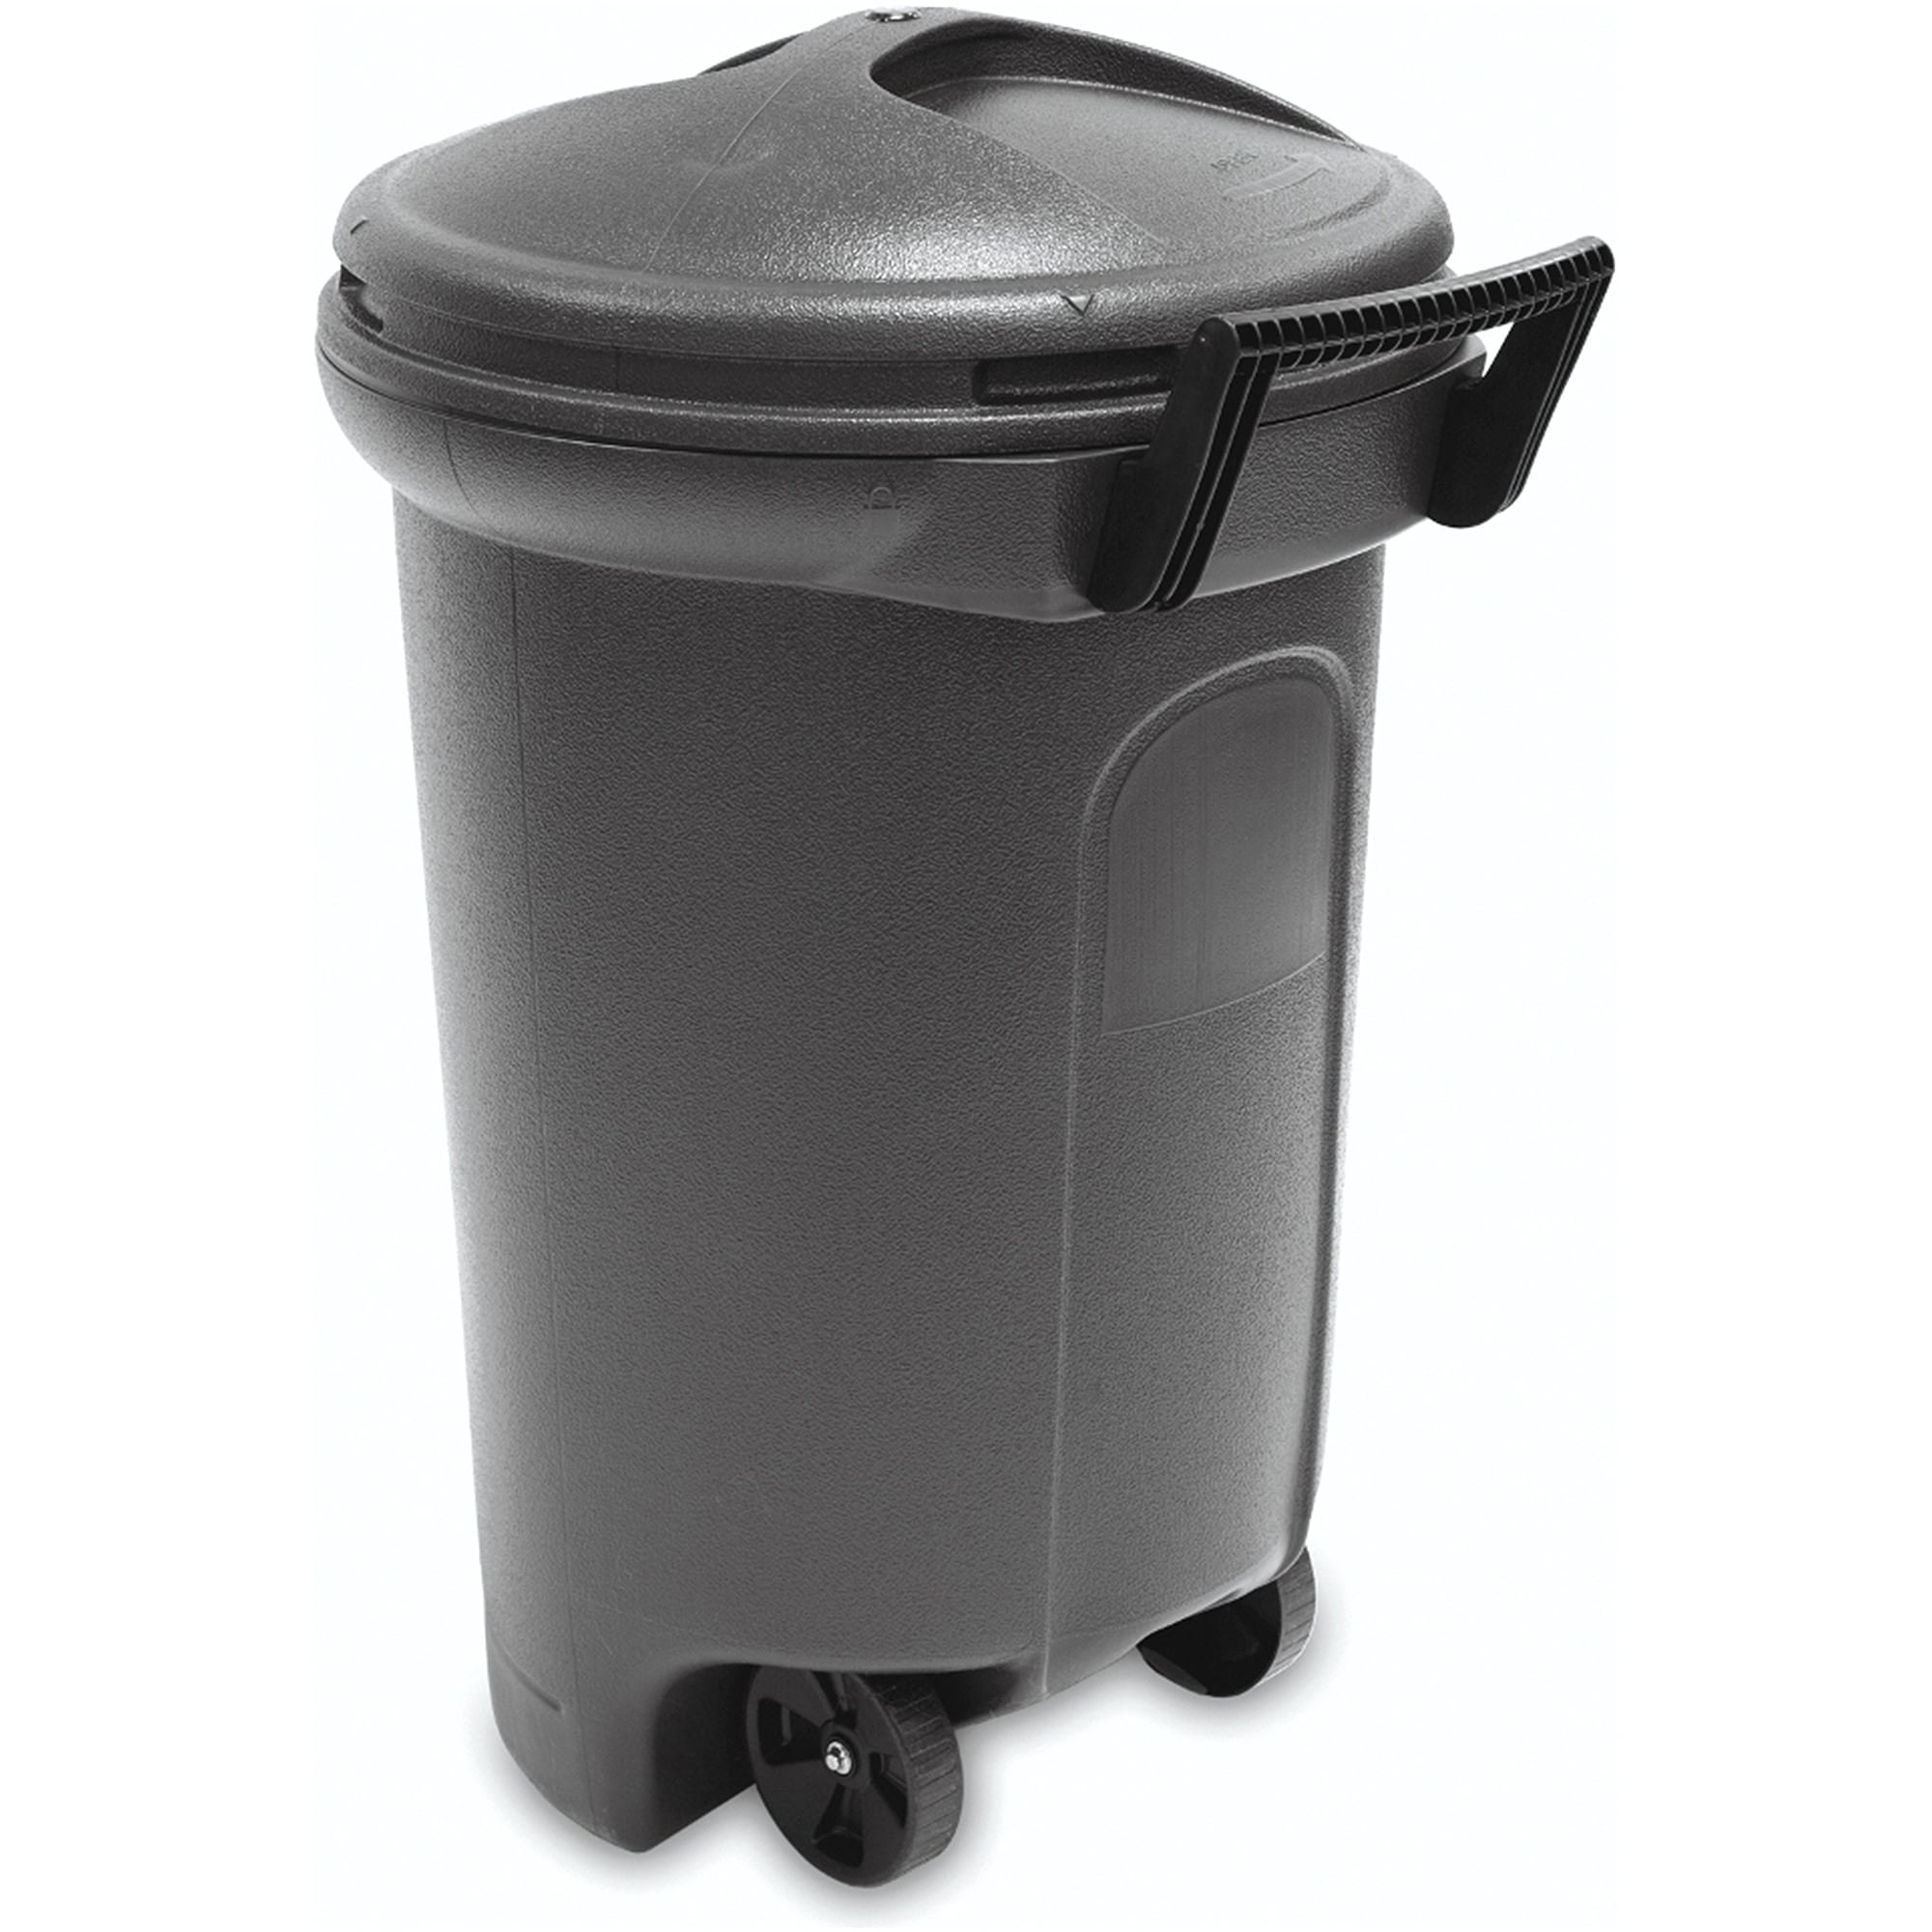 Trashmaster 32-Gallon Trash Can with Wheels